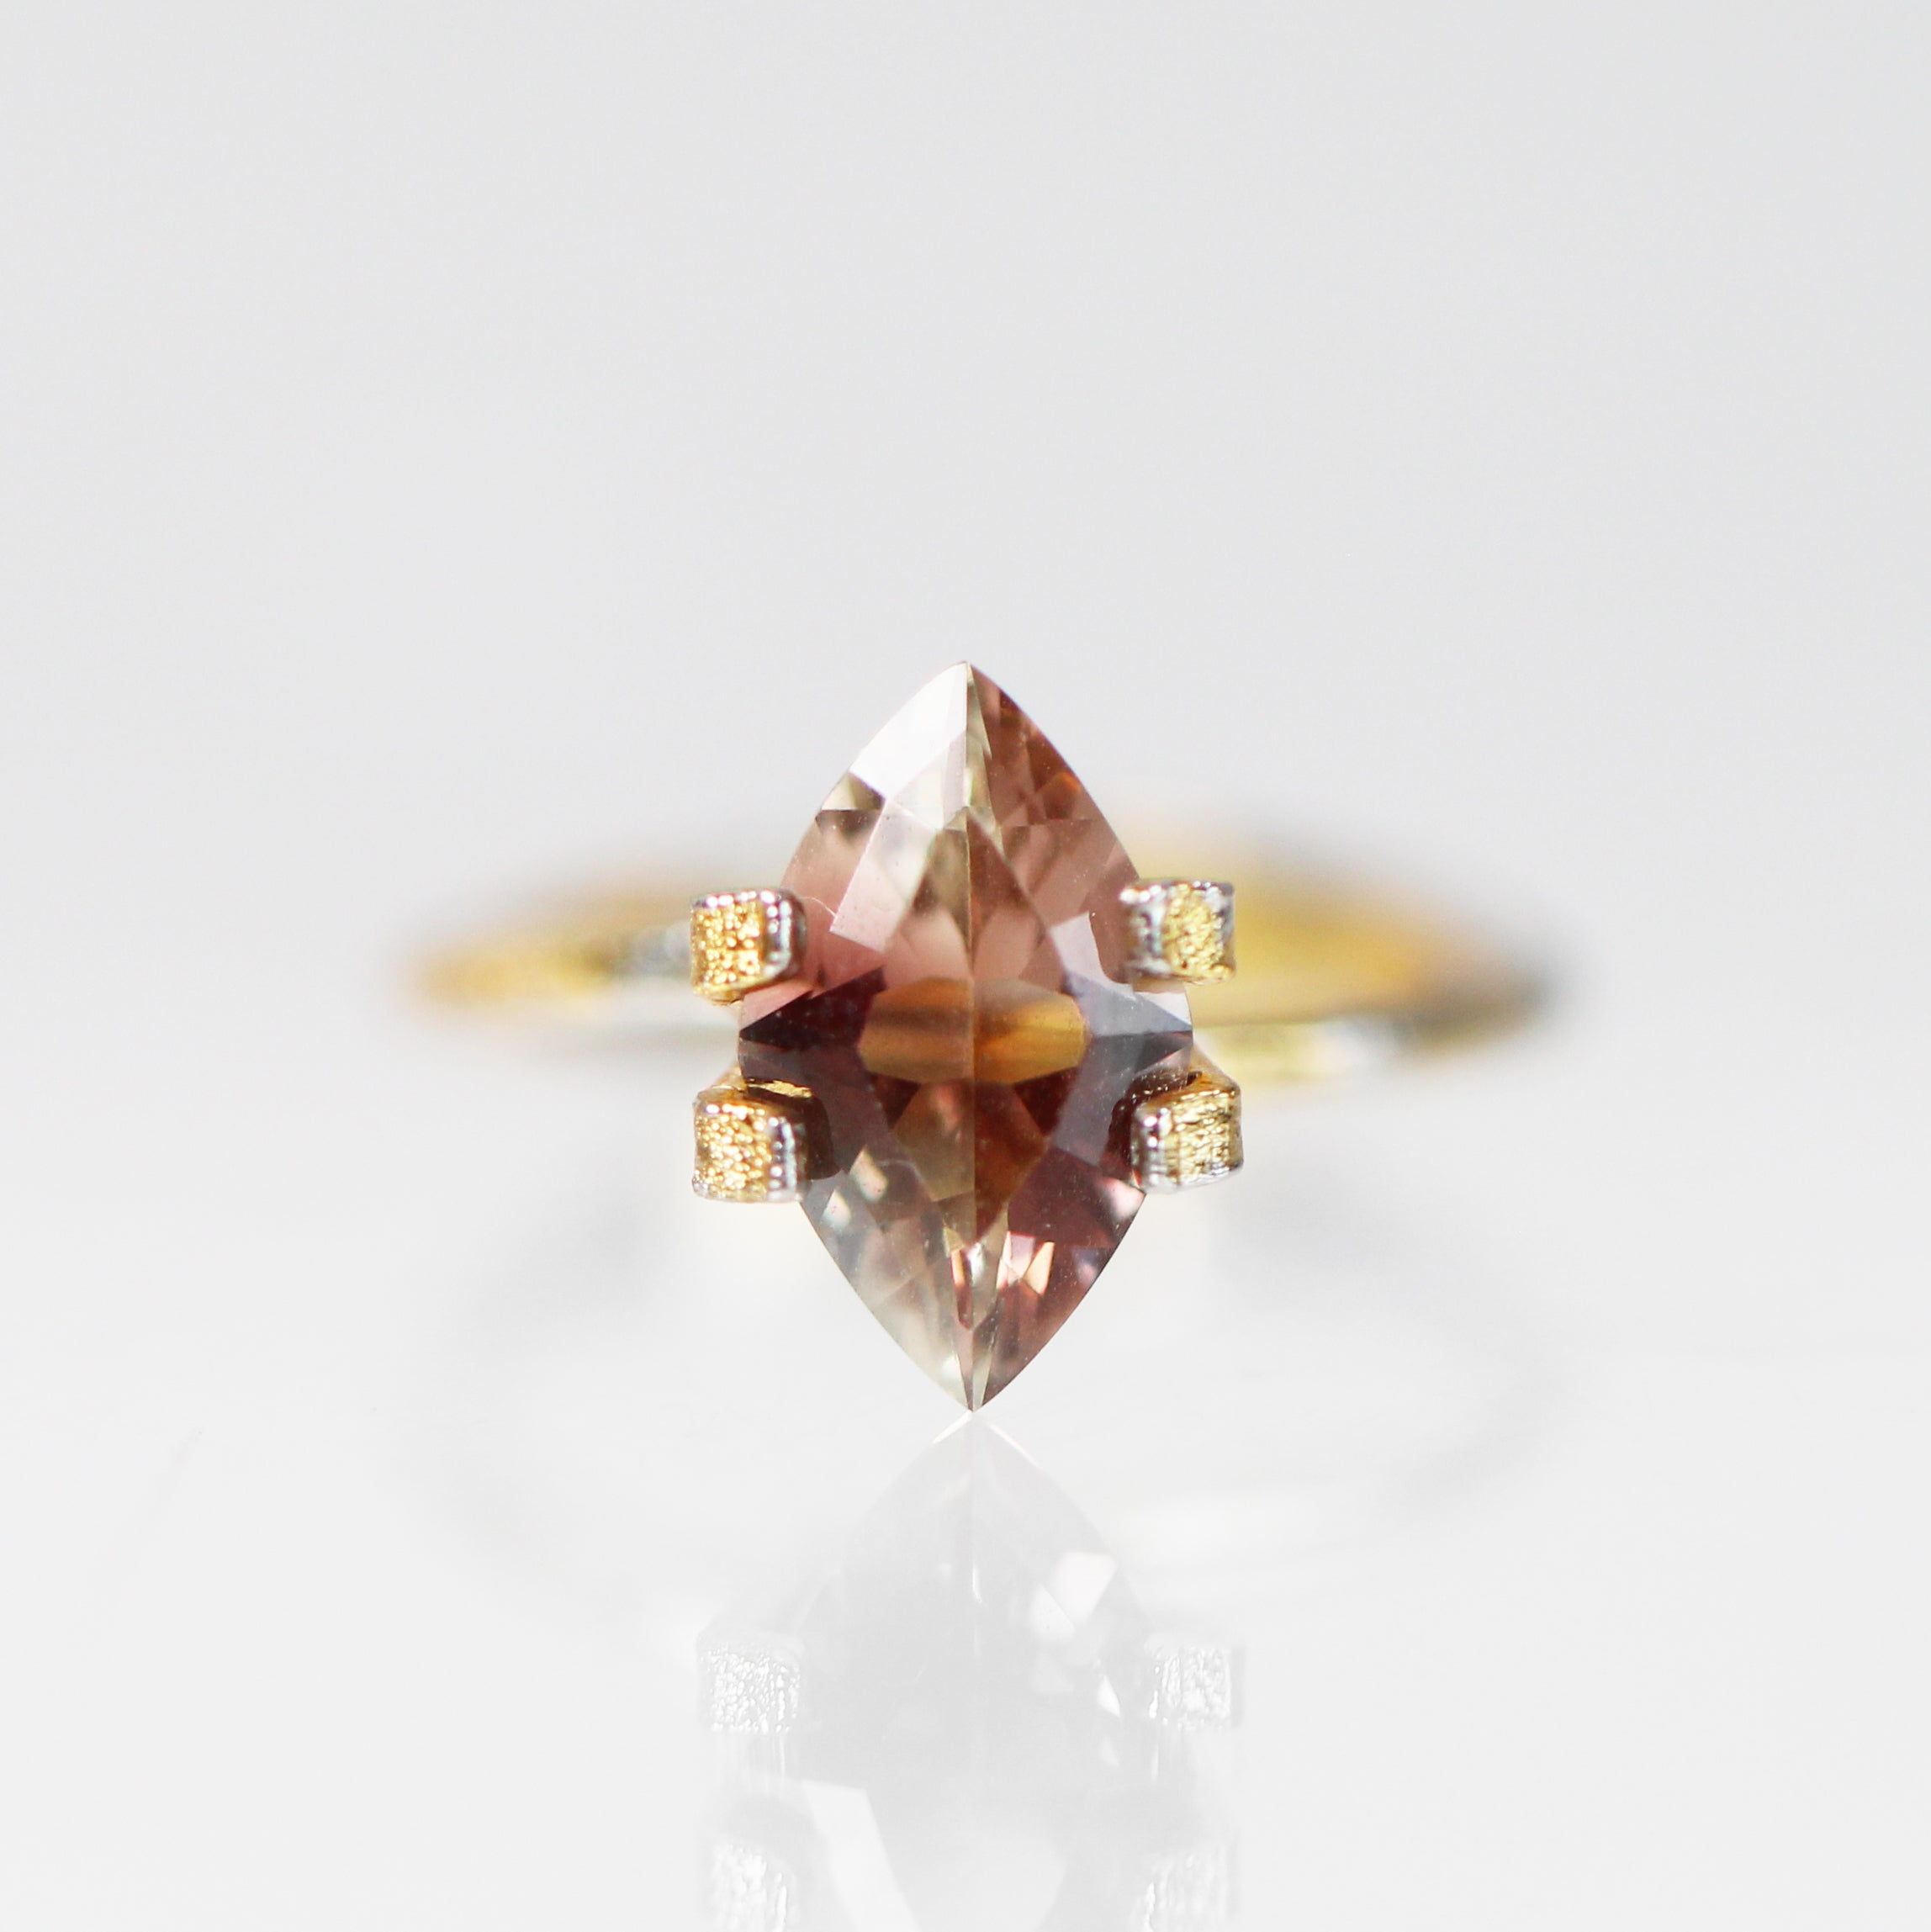 Samantha 1.58 Carat Marquise Sunstone- Inventory Code SUNMB158 - Celestial Diamonds ® by Midwinter Co.